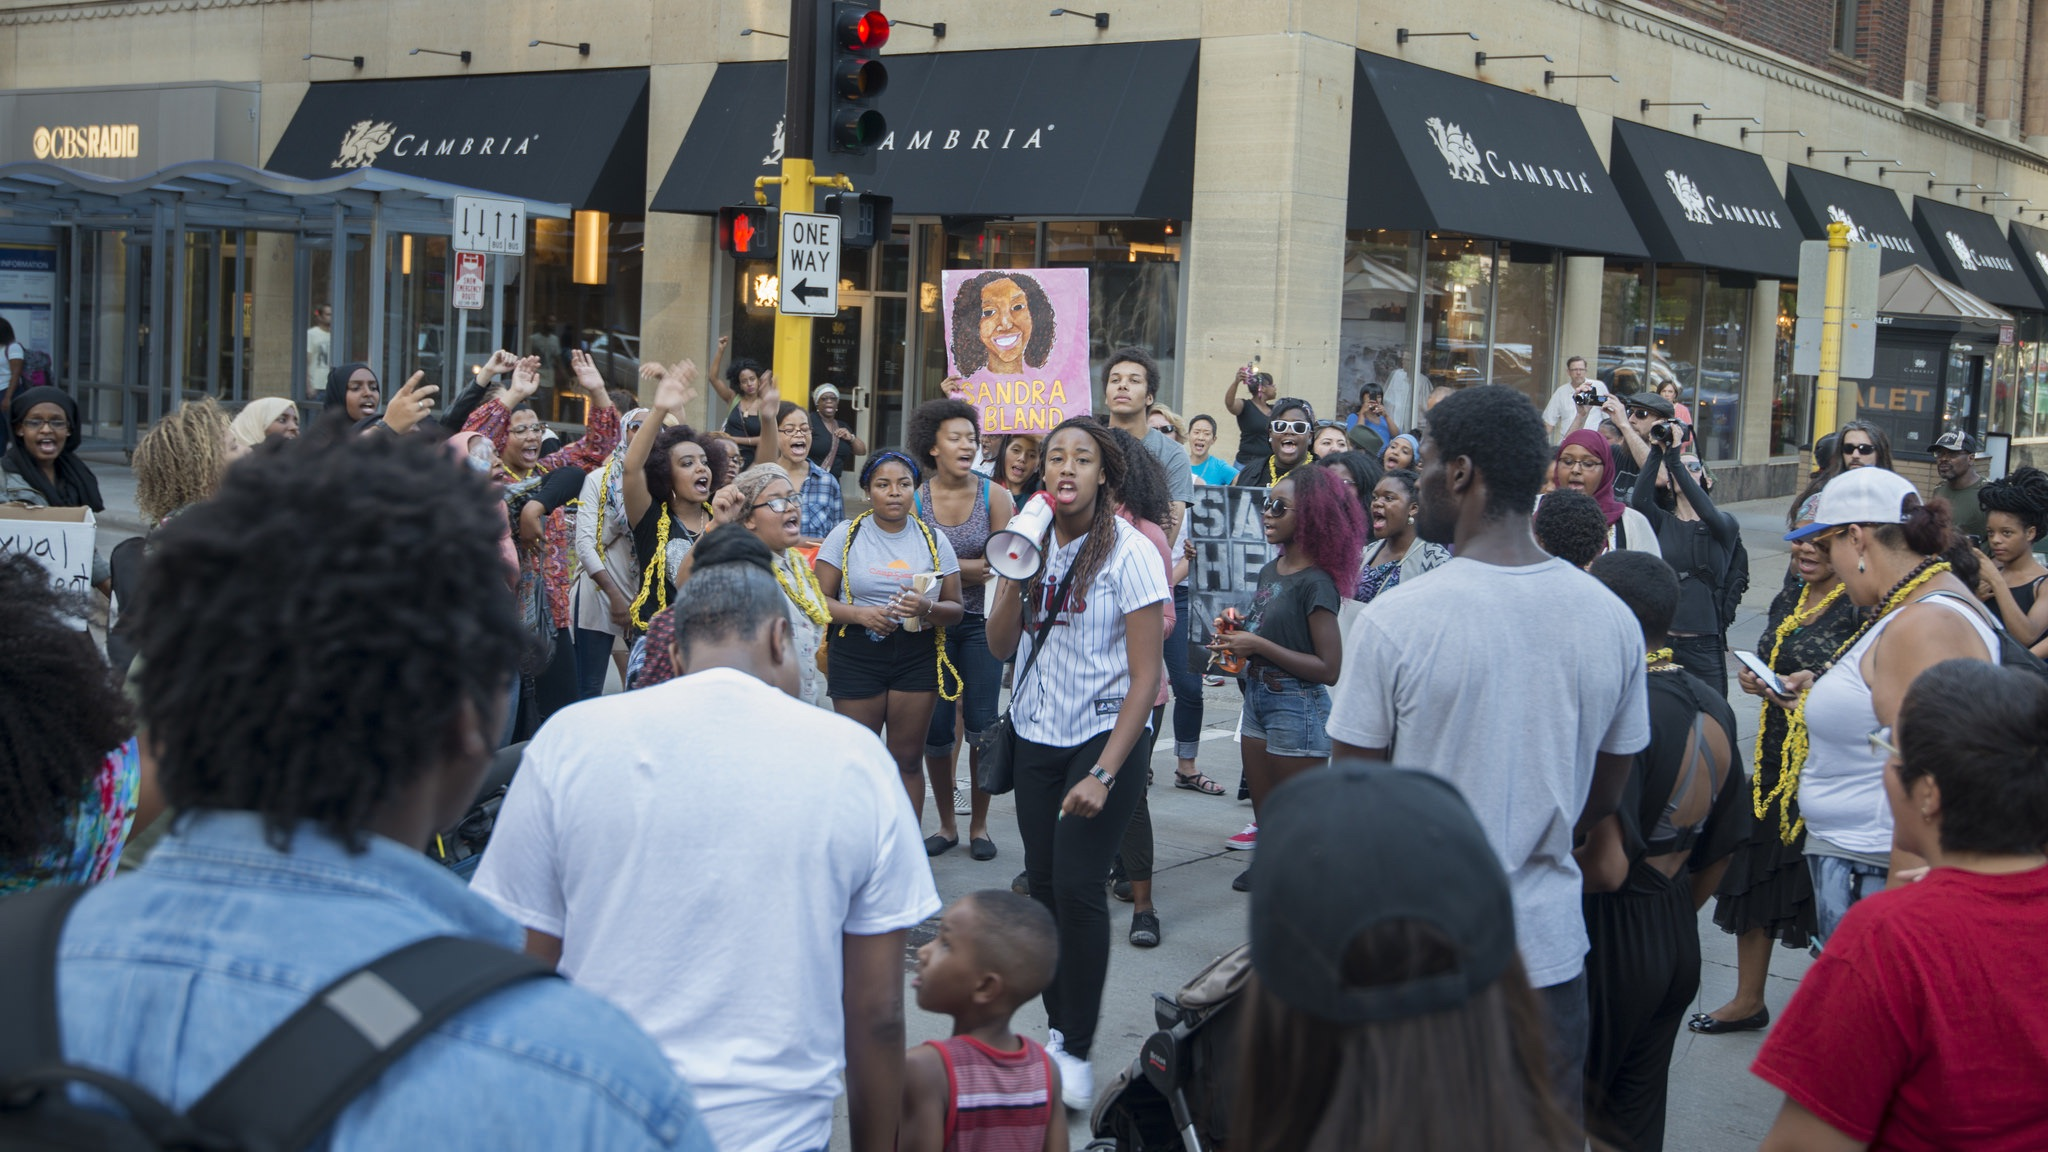 March to honor Sandra Bland and protest deaths of black women in police custody